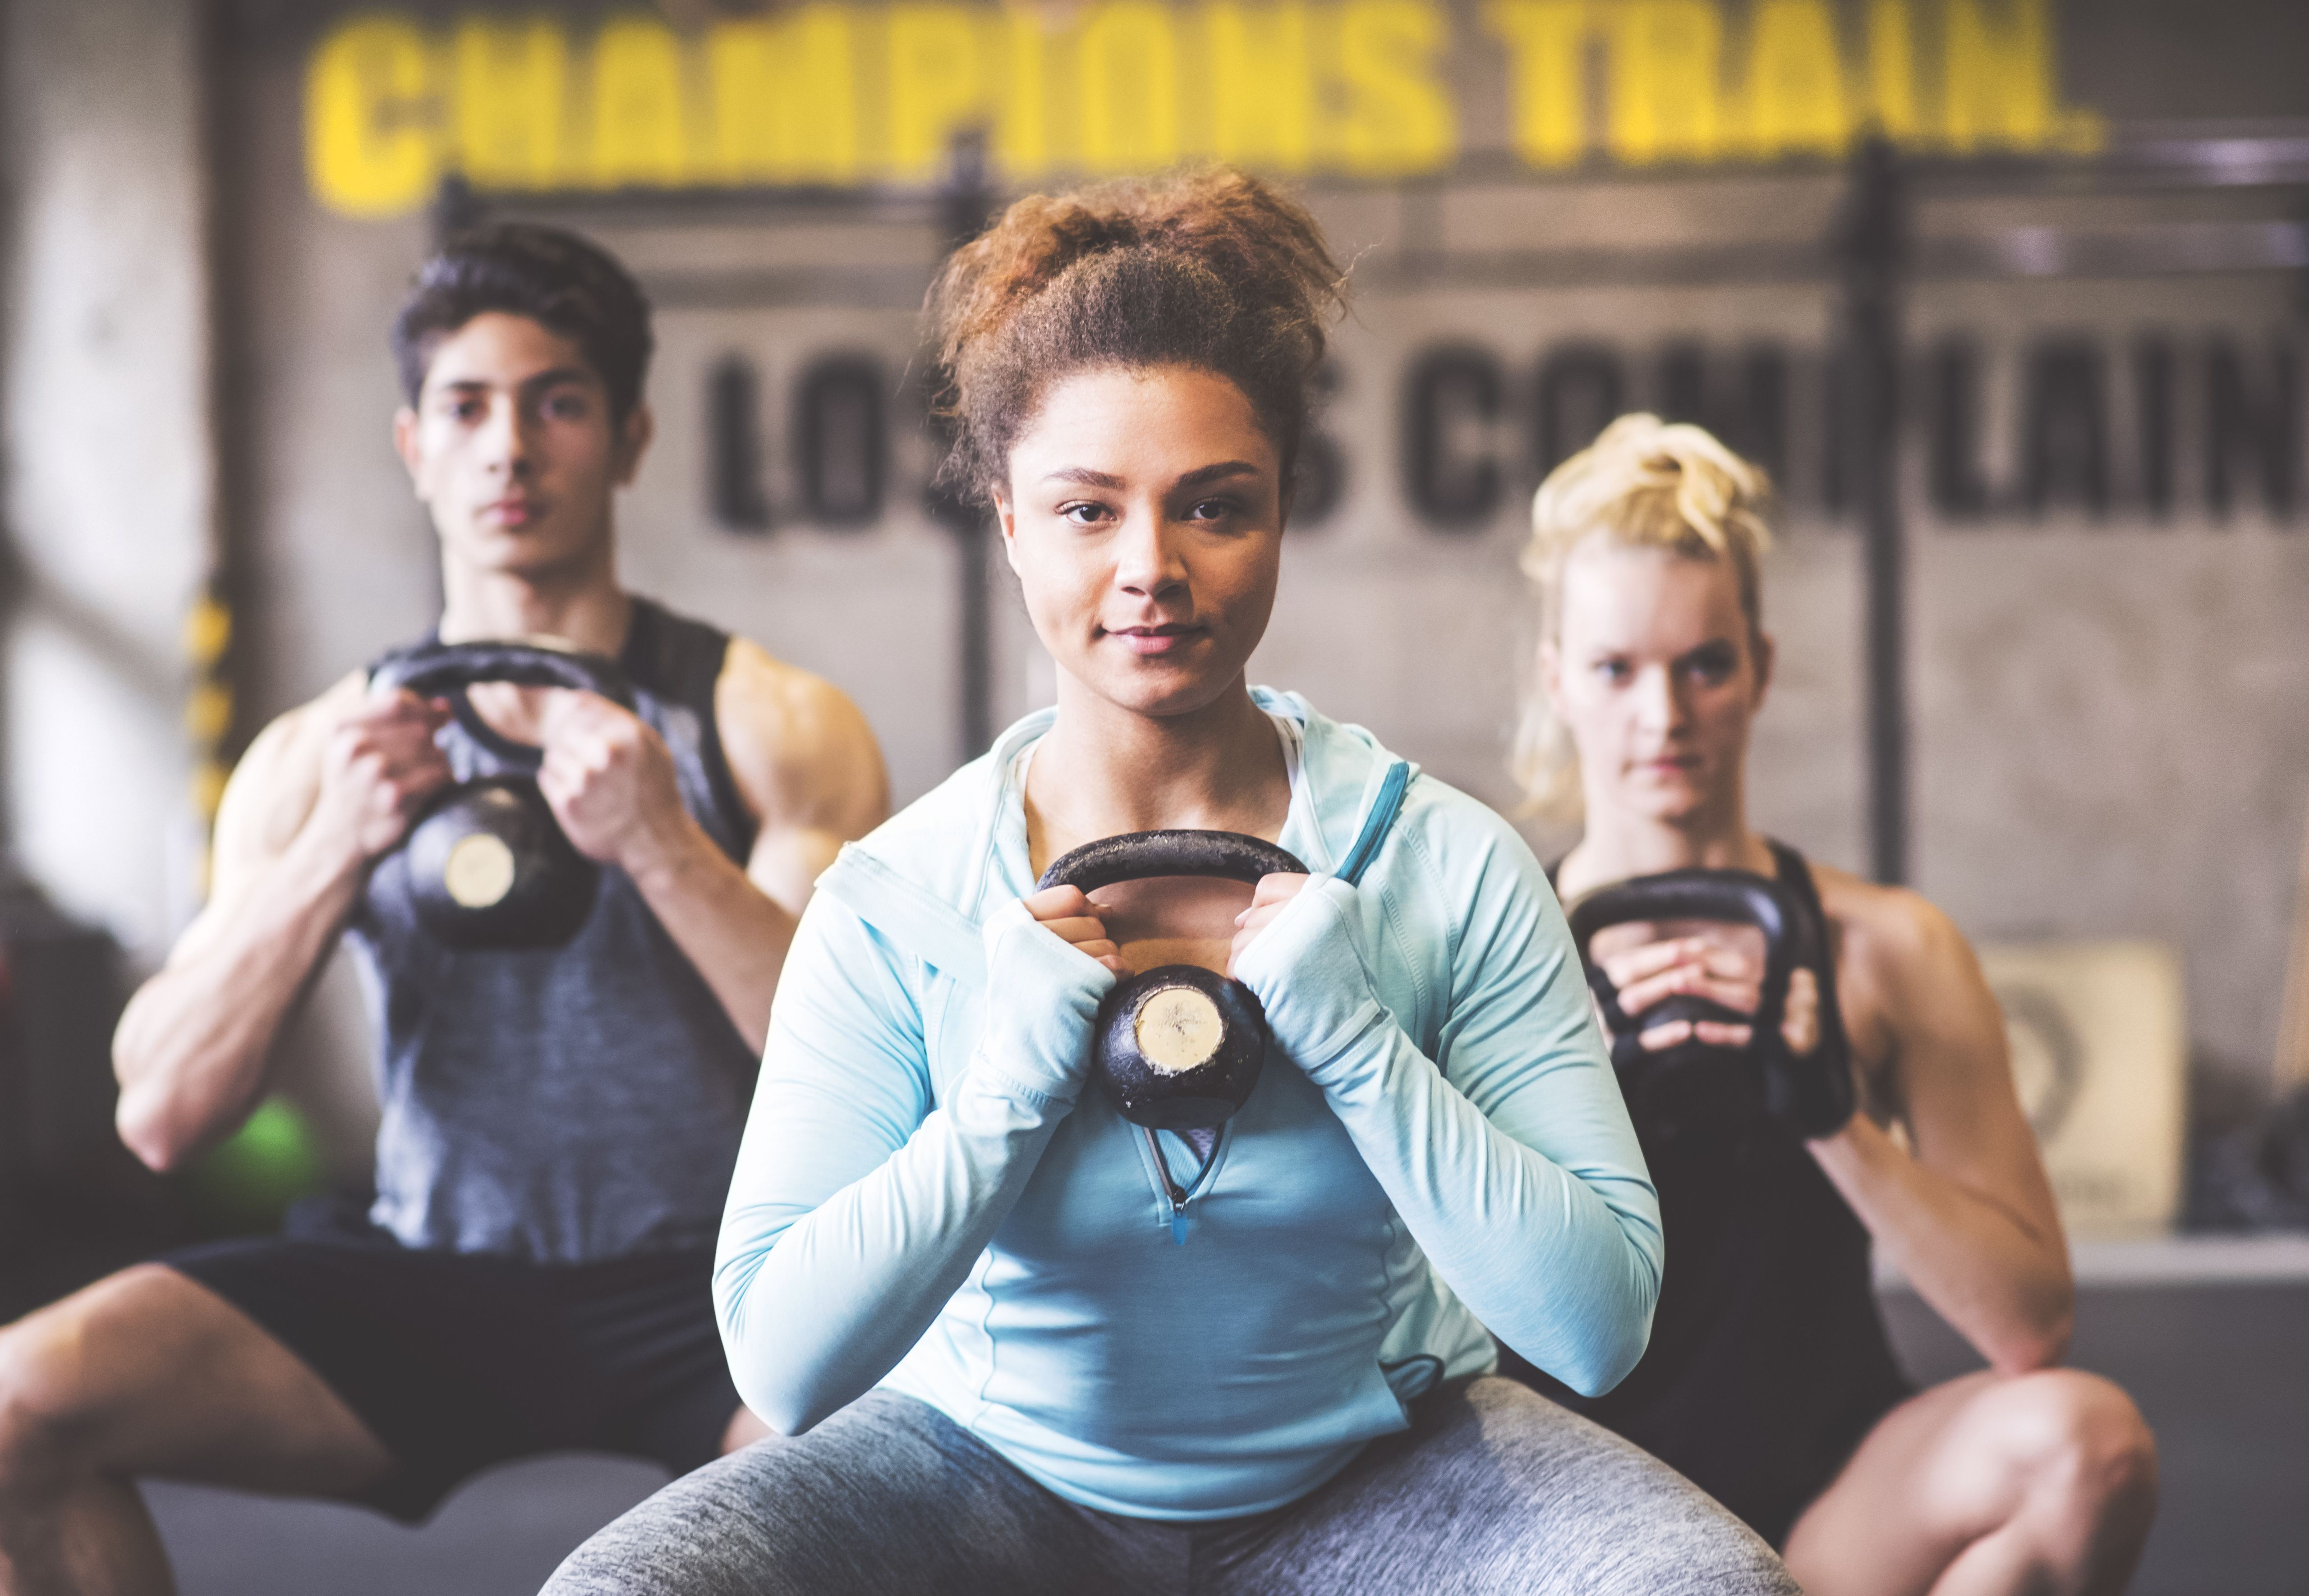 Best Workout Clothing Brands for Women With Curves